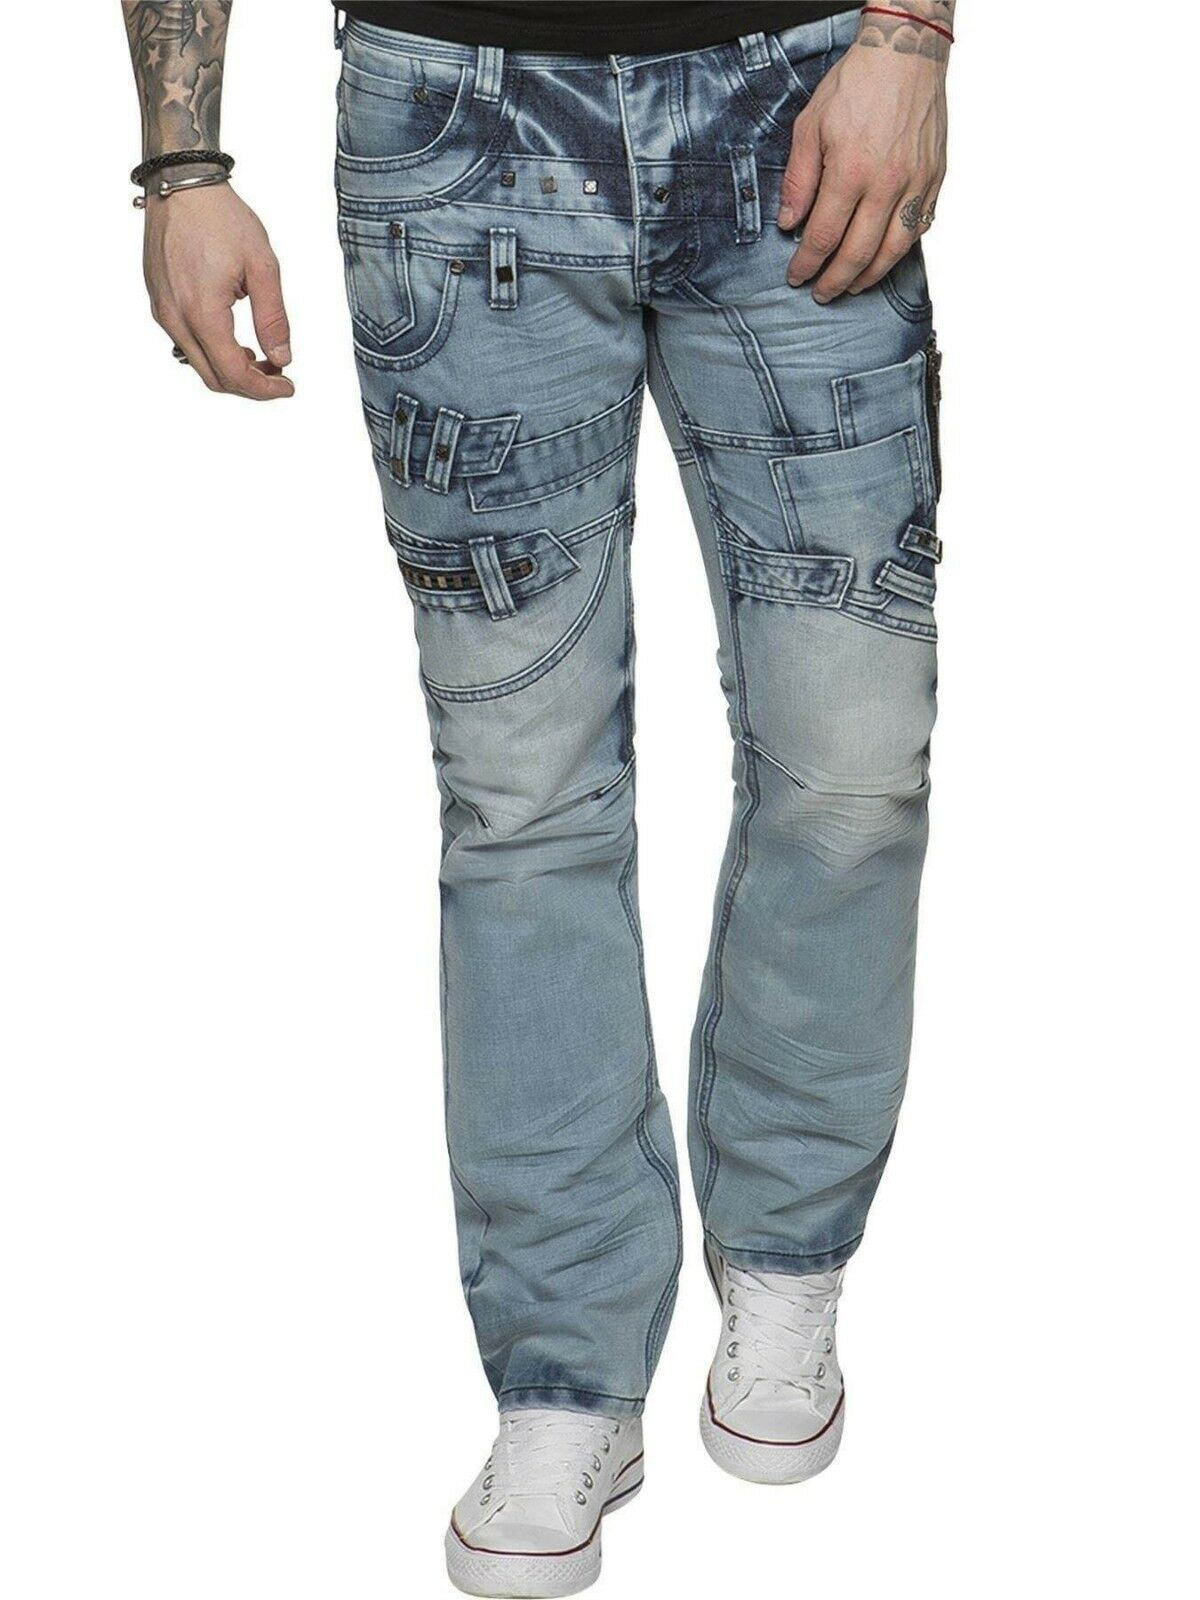 Eto Quality bluee Acid Stonewashed Studs Casual Jeans Regular Fit Tapered RRP